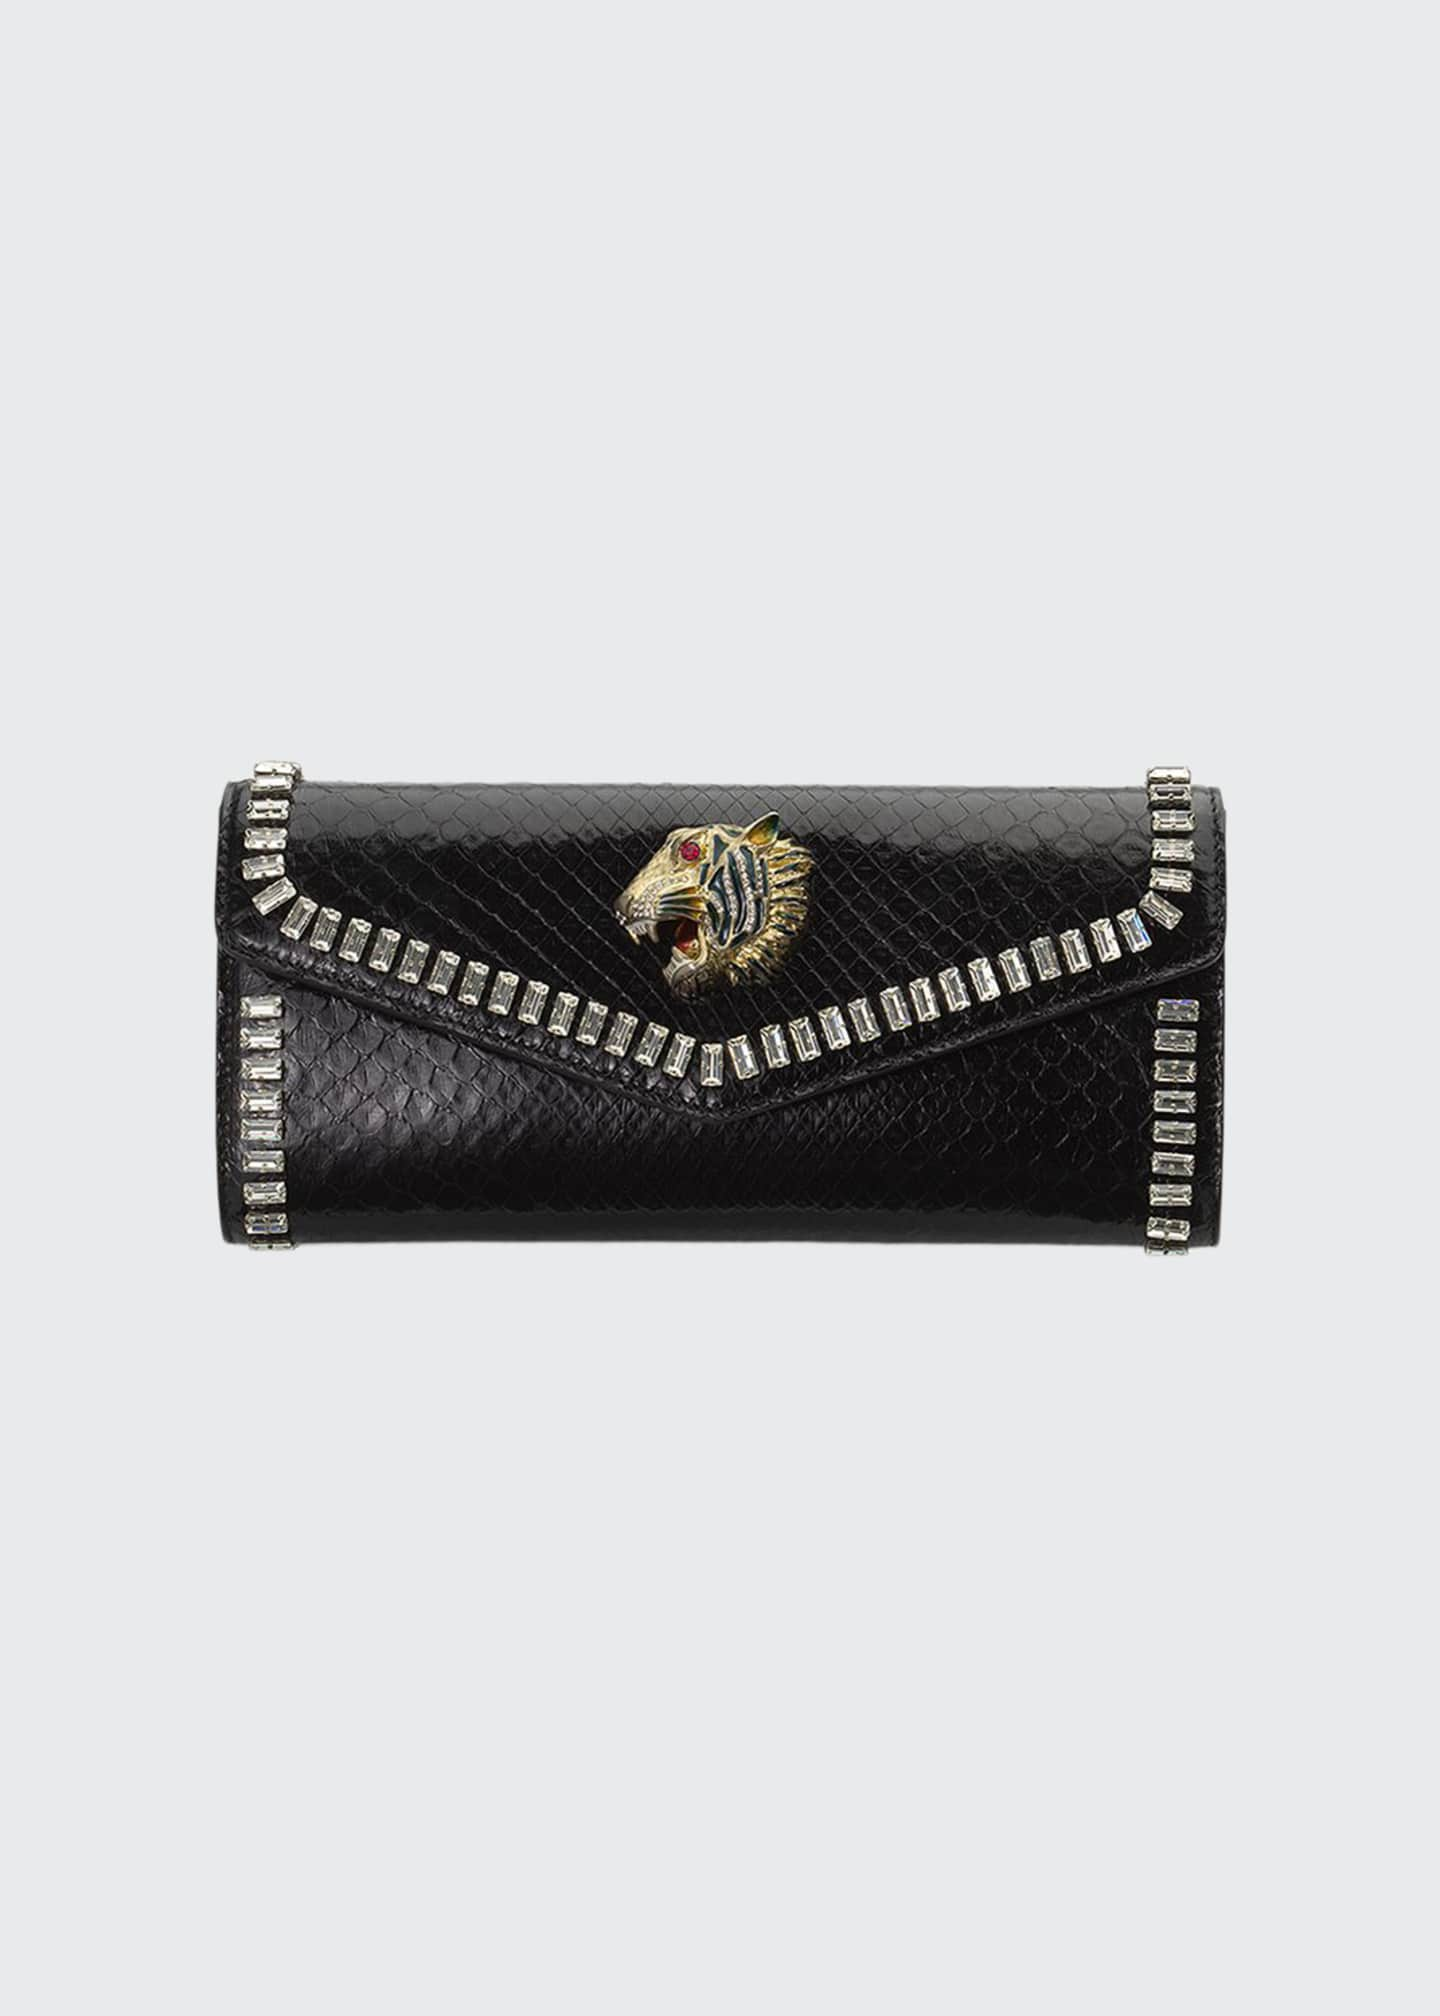 Gucci Broadway Python Clutch Bag